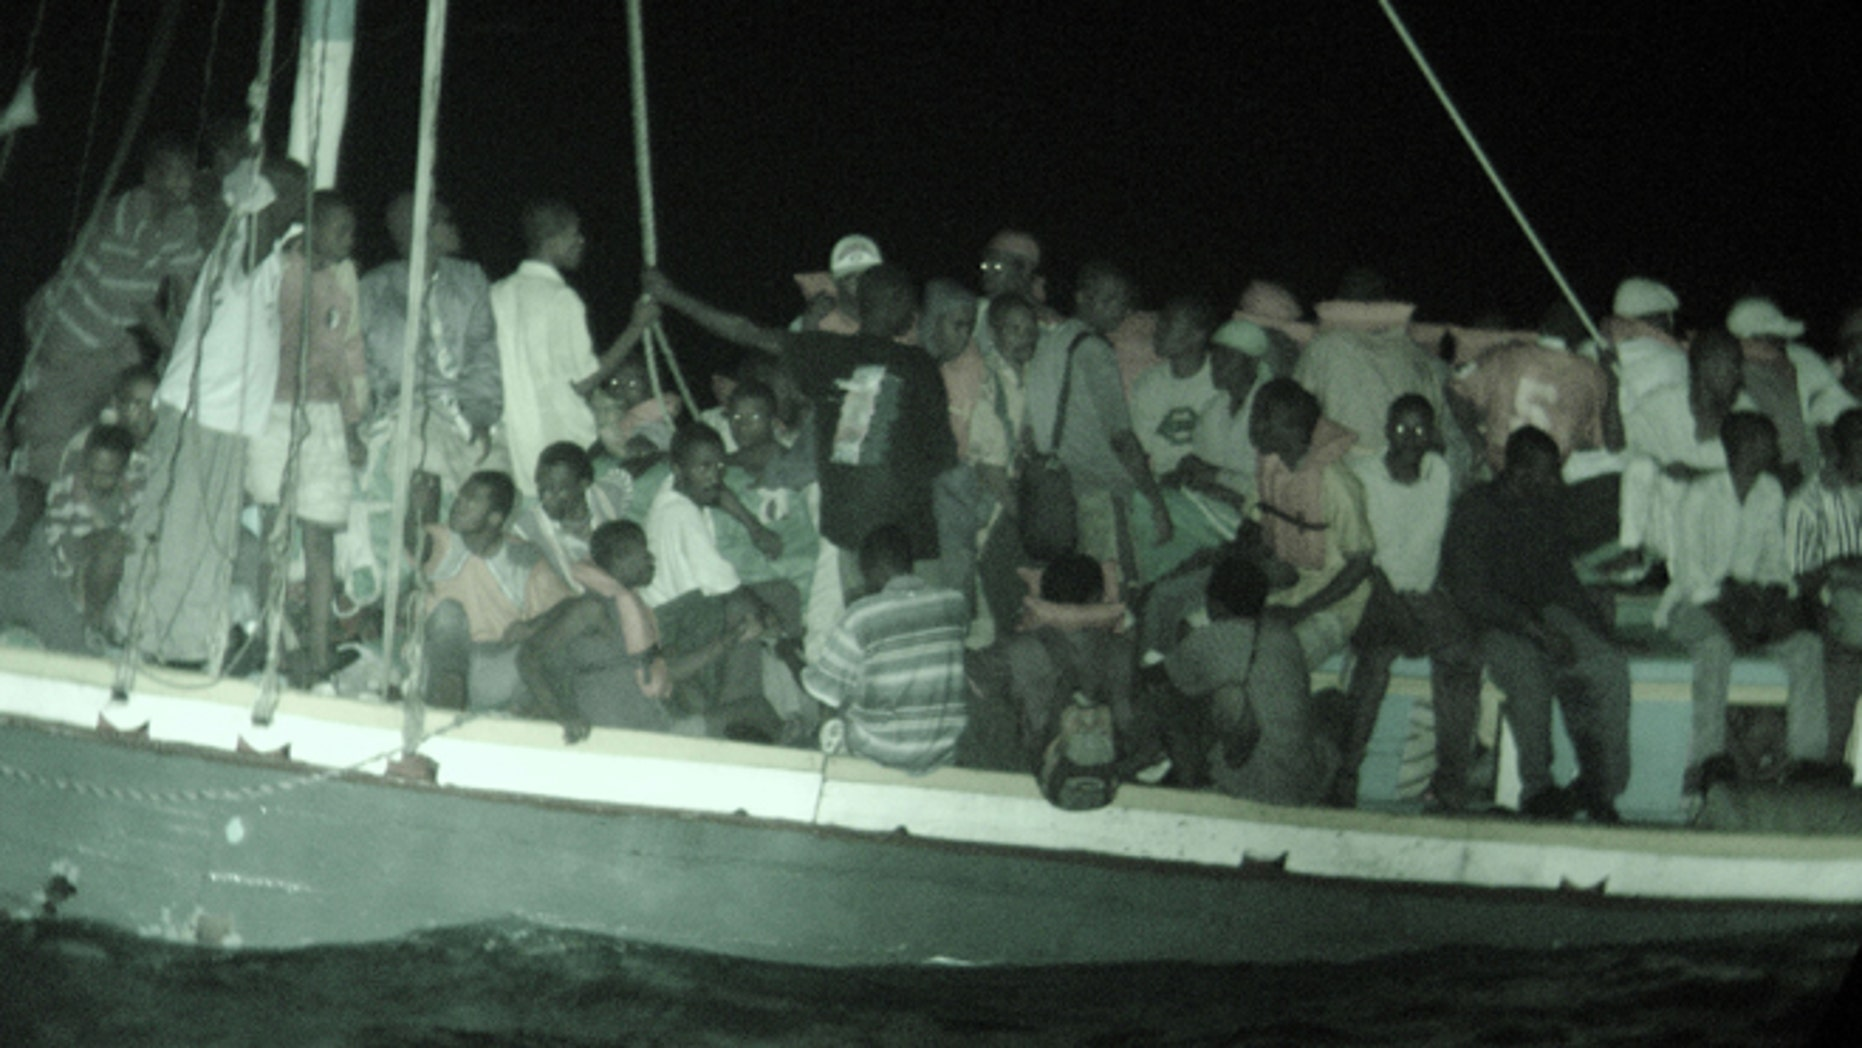 AT SEA - APRIL 30:  In this handout photo provided by the U.S. Coast Guard, Haitian migrants wait aboard a 50-foot sailboat to be brought by small boat to the Coast Guard cutter Dependable April 30, 2005 in the Windward Pass, northwest of Haiti. The crew of the Dependable rescued 132 migrants from Haiti from the overloaded 50-foot sail freighter, who were later safely repatriated.  (Photo by U.S. Coast Guard via Getty Images)